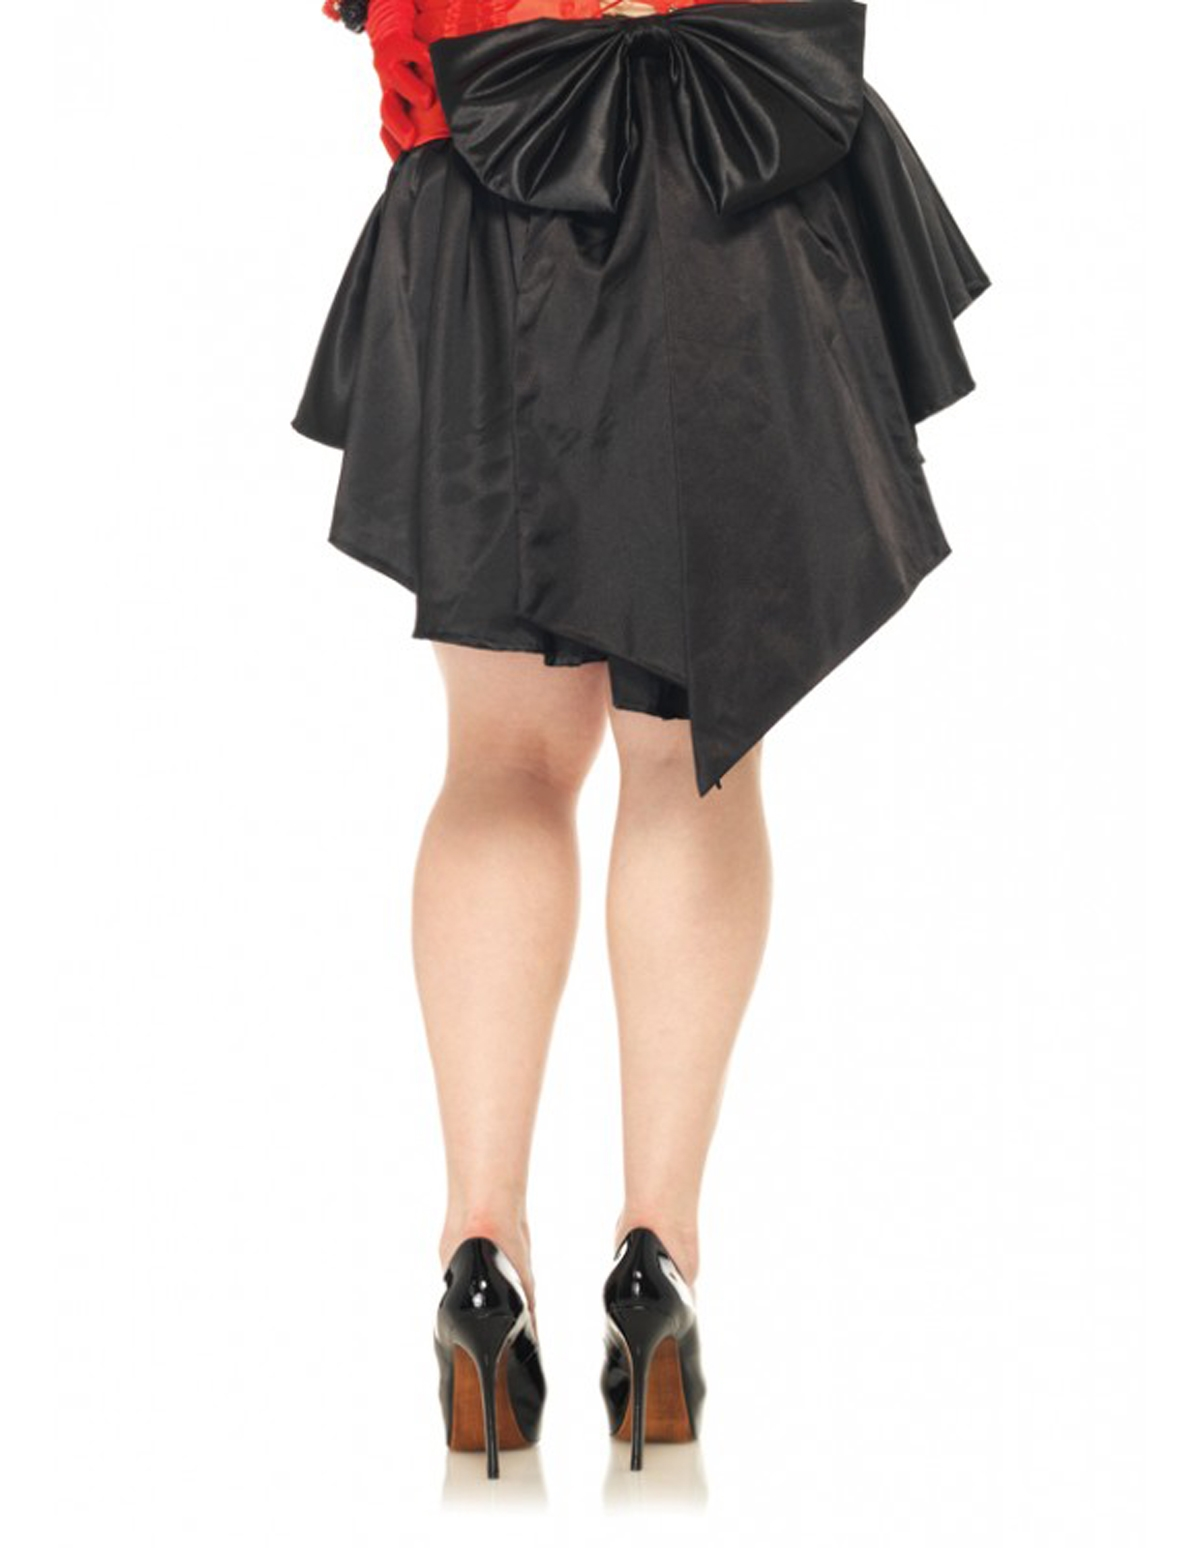 Satin Burlesque Skirt - Plus